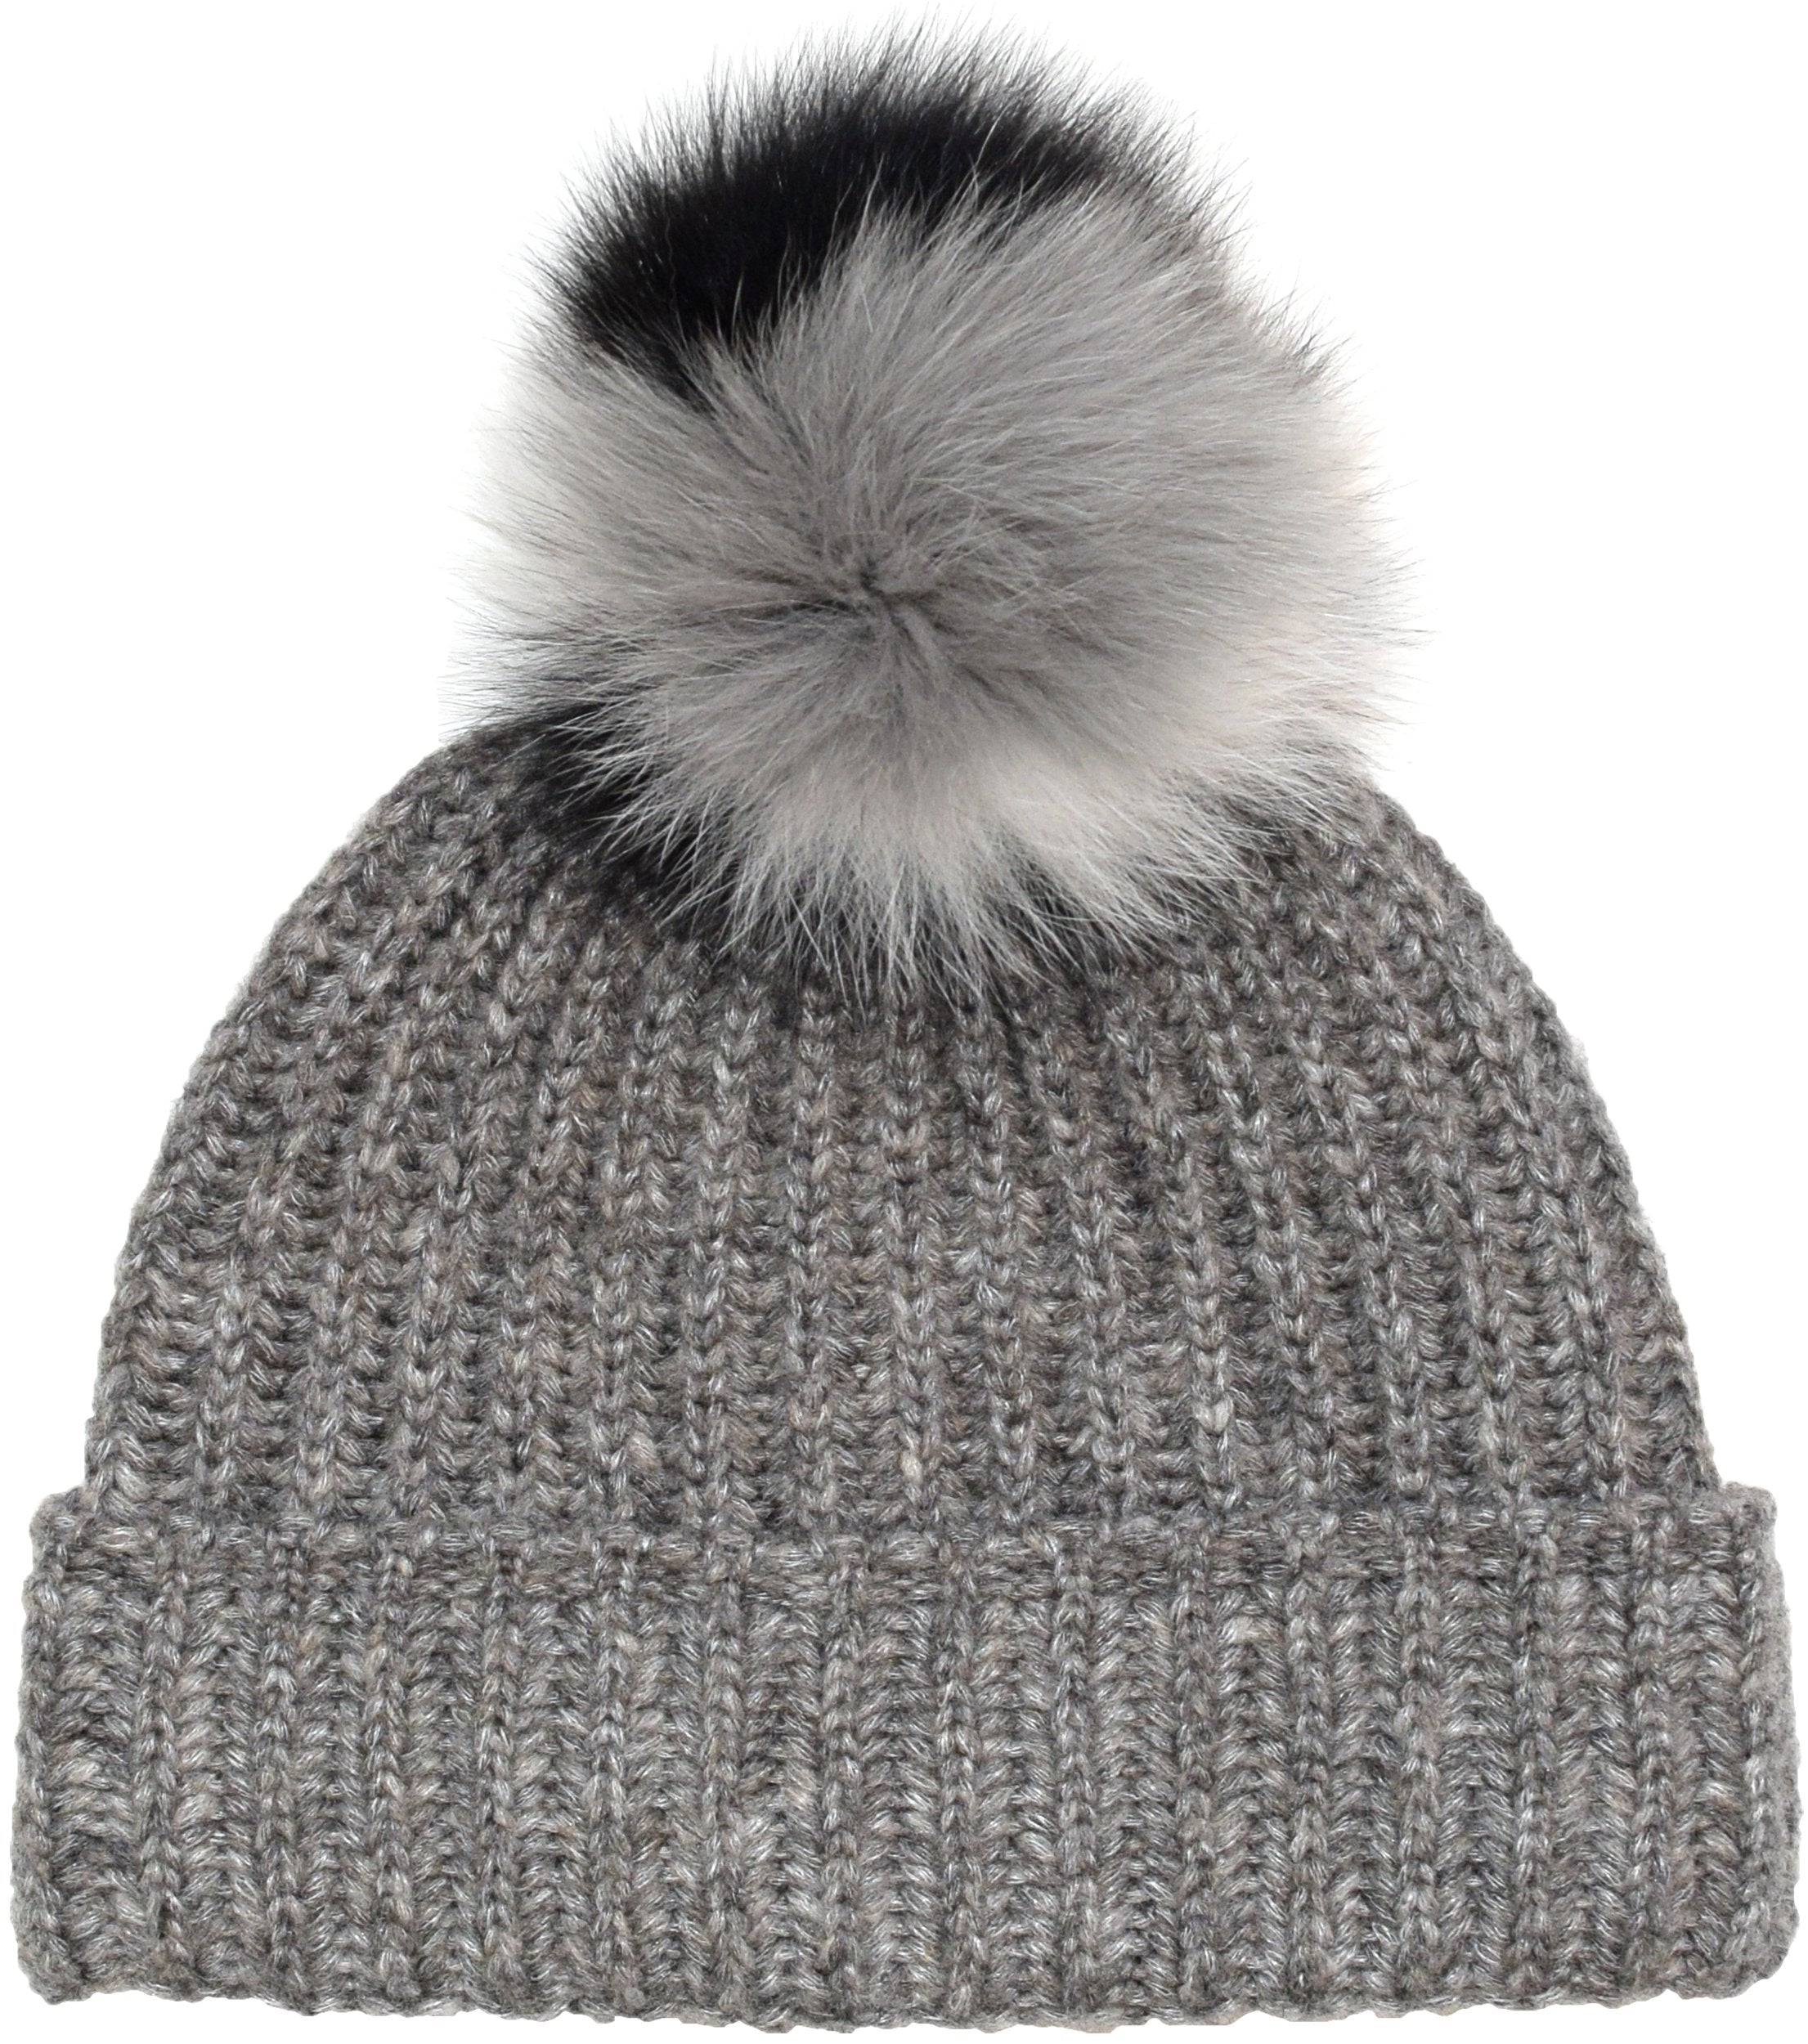 Wool Blend Knit Toque with Multicolored Real Fur Pom